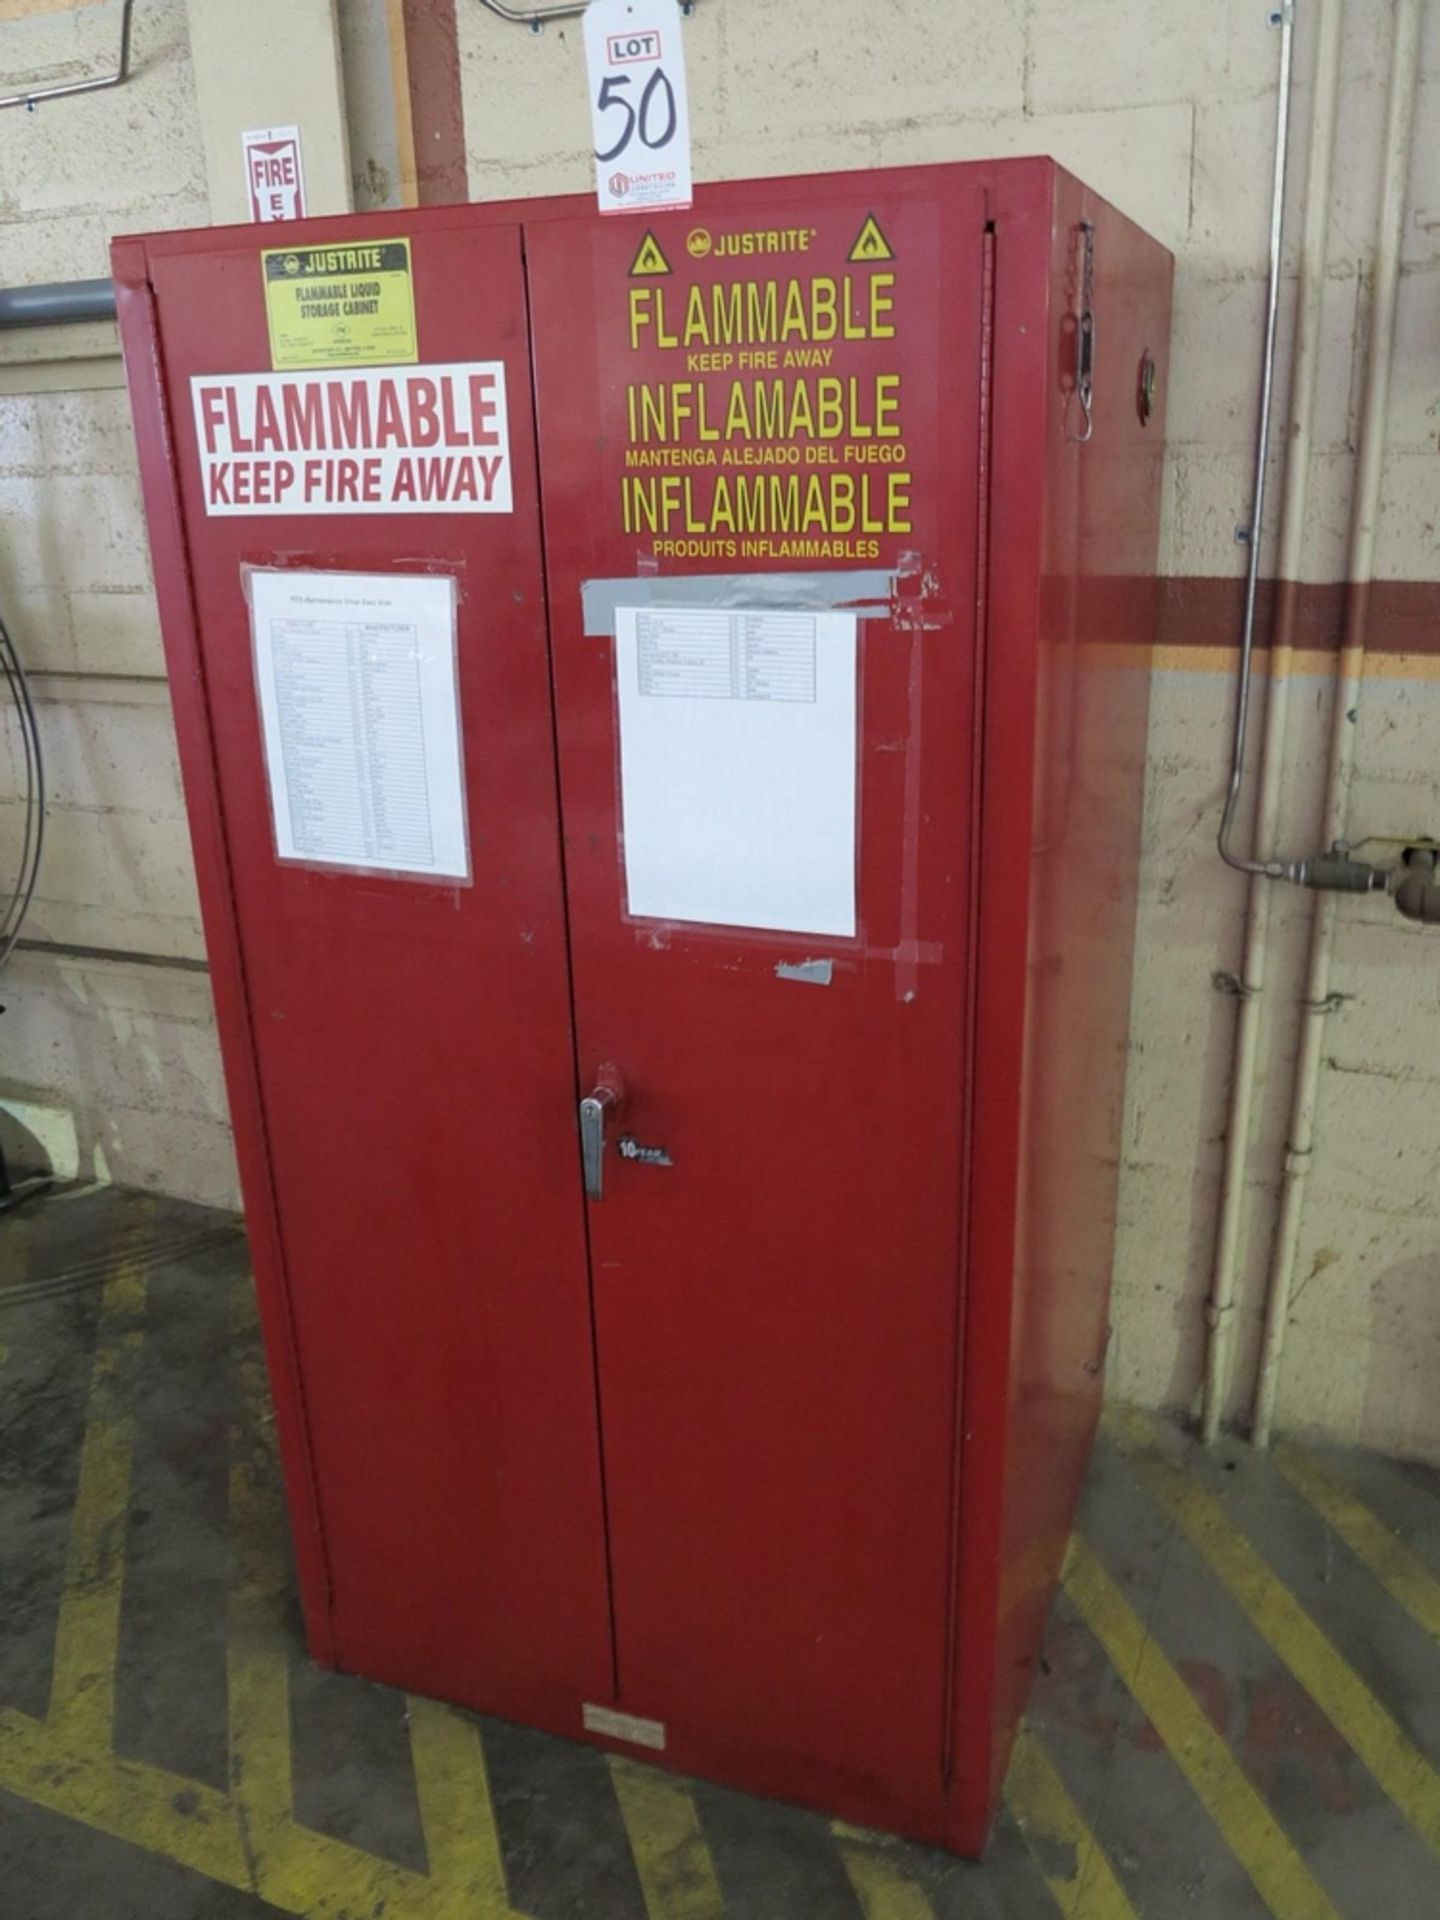 Lot 50 - JUSTRITE FLAMMABLE LIQUID STORAGE CABINET, NO. 25600, 60 GALLON CAPACITY